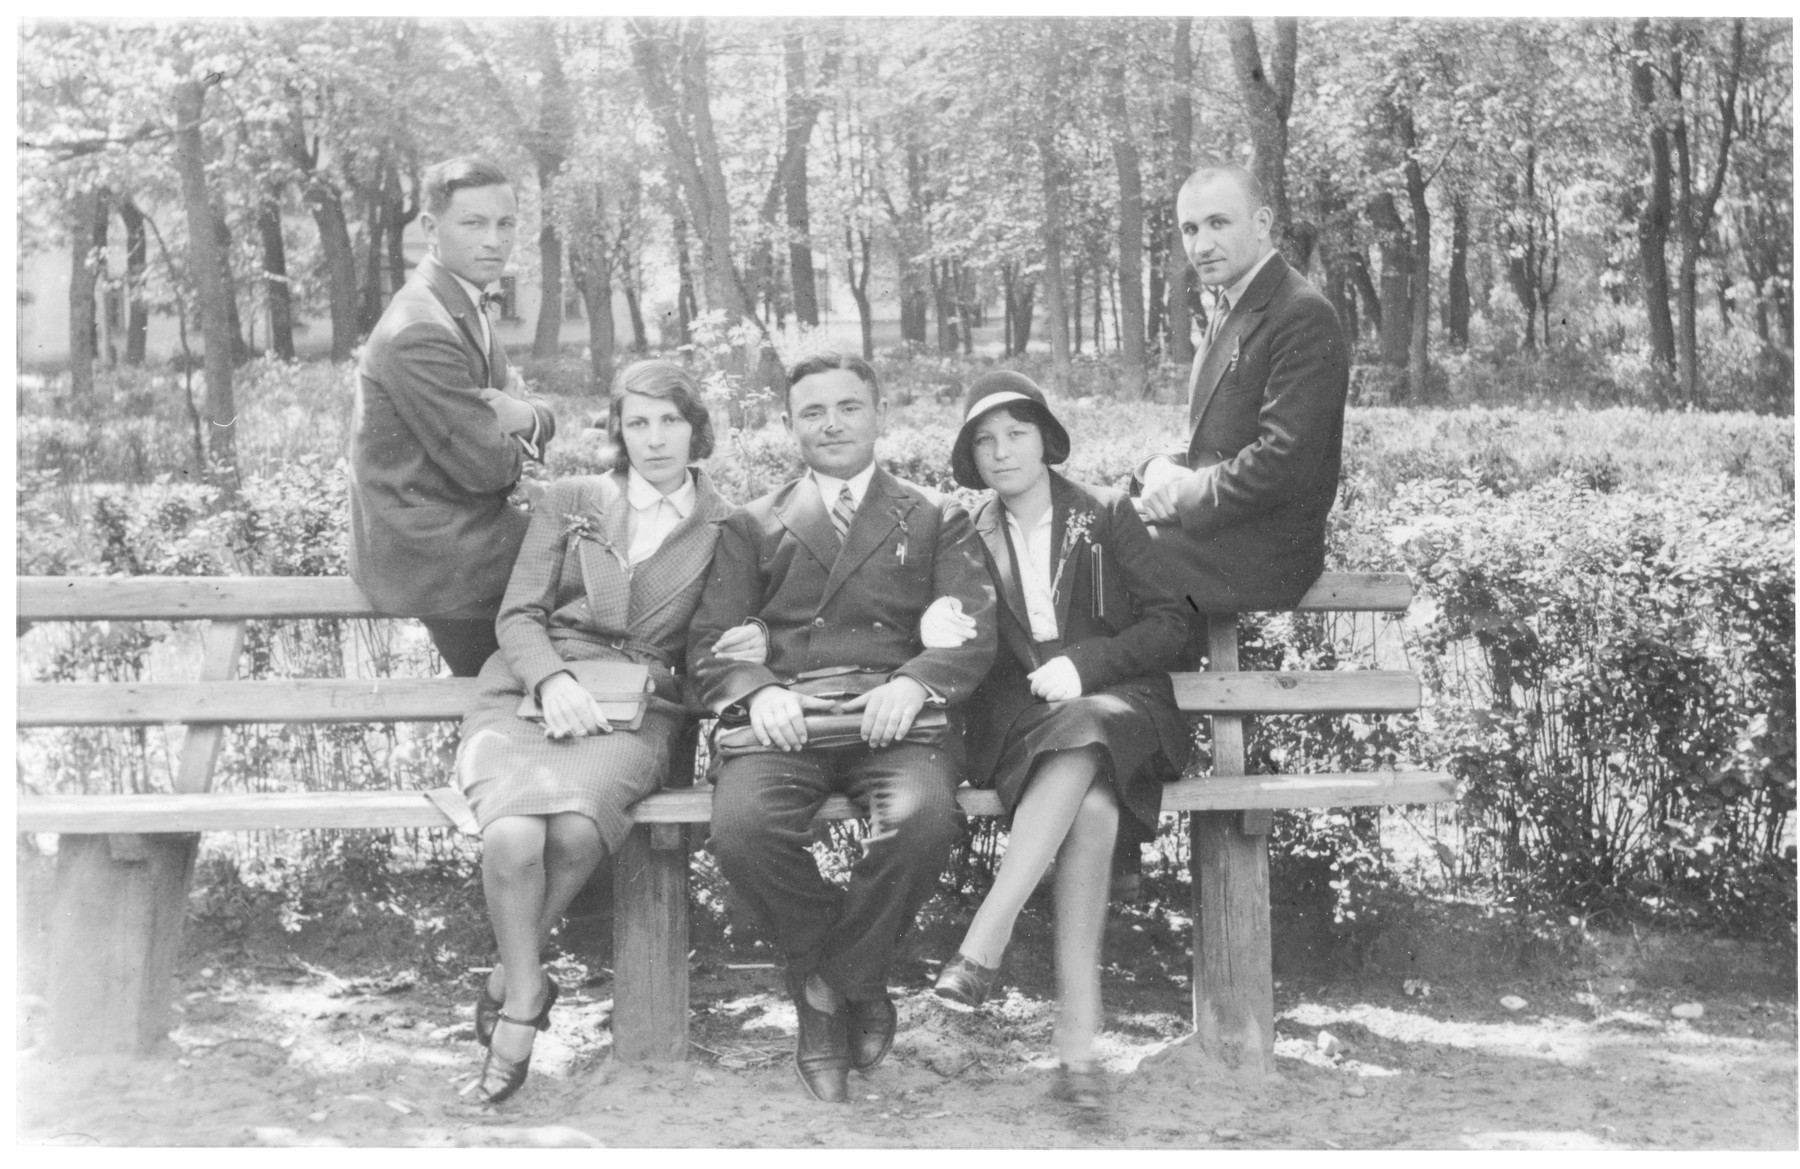 Jewish students pose on a bench at the University of Vilna.  Seated from left to right are: Rusia and her brother Abrasha Knyszynsky, Raya Markon and Max Heller (behind on the right).